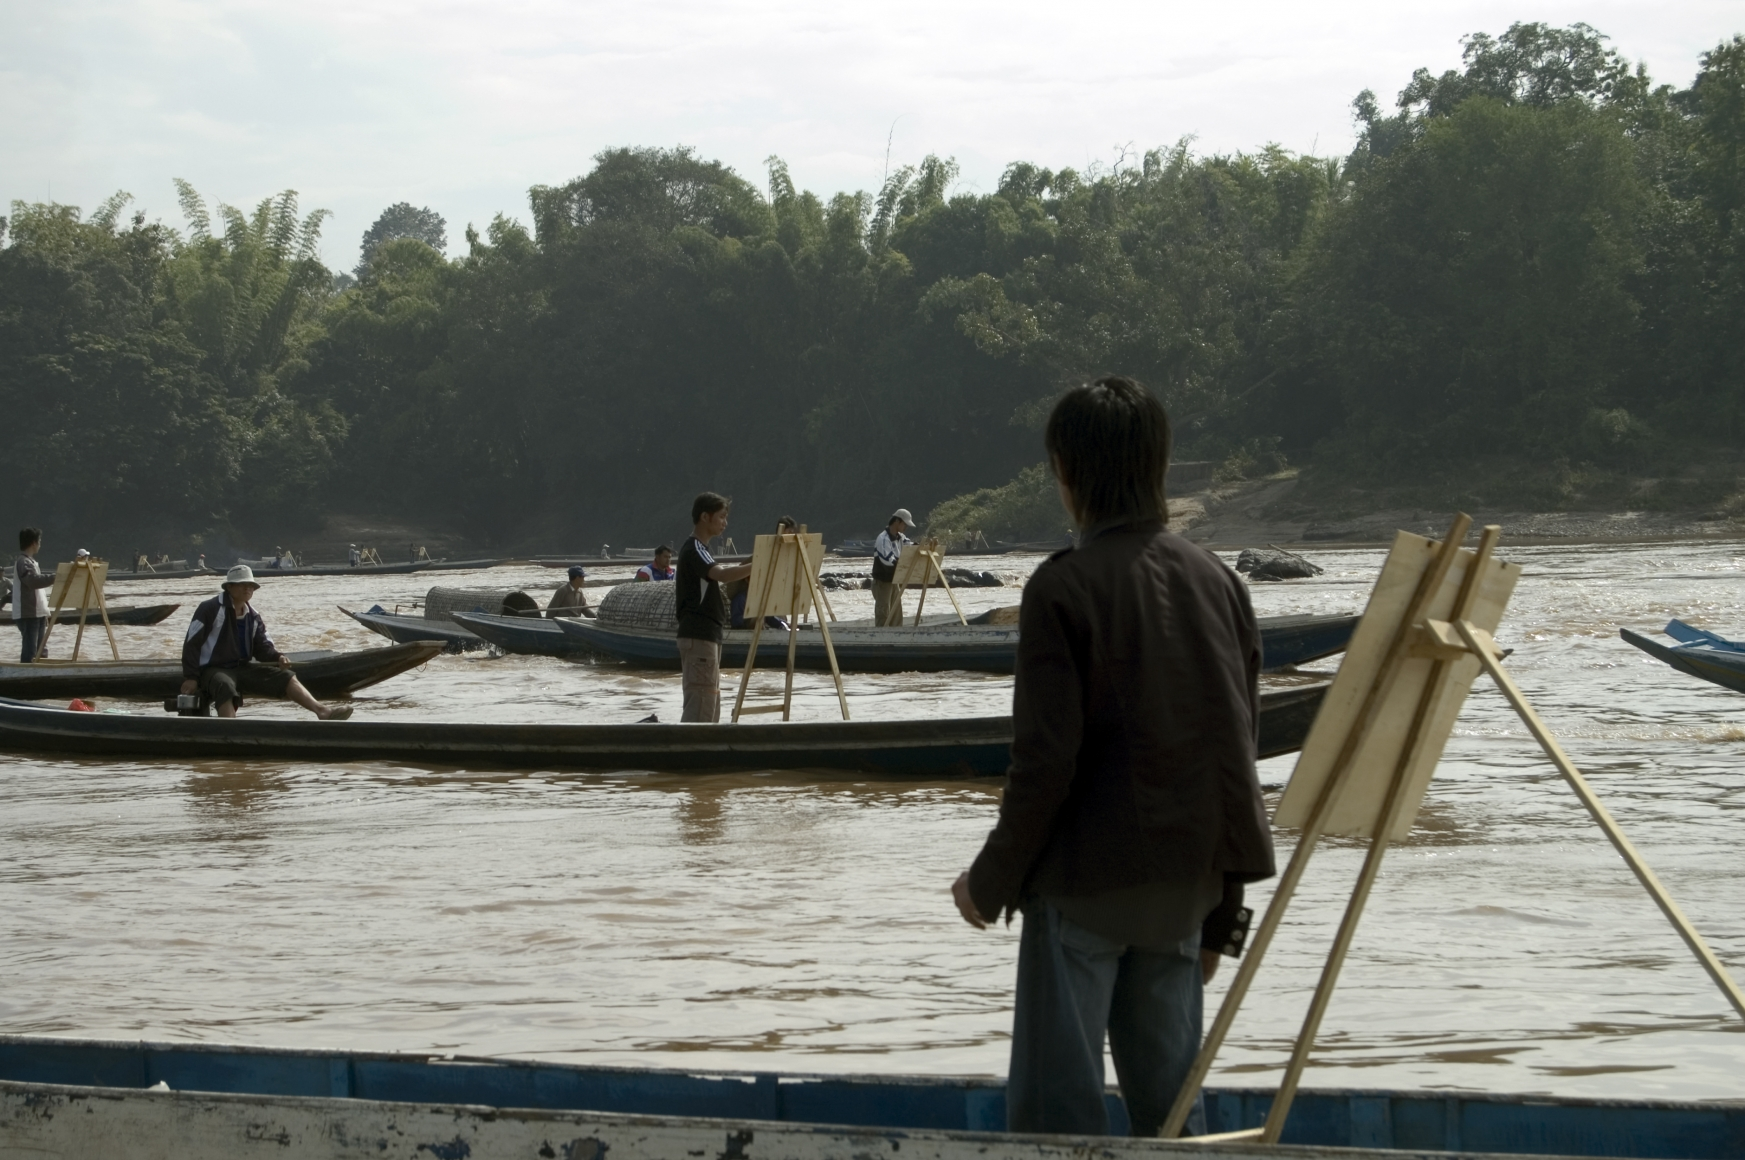 First video still from Jun Nguyen-Hatsushiba's The Ground, the Root, and the Air: The Passing of the Bodhi Tree, 2007